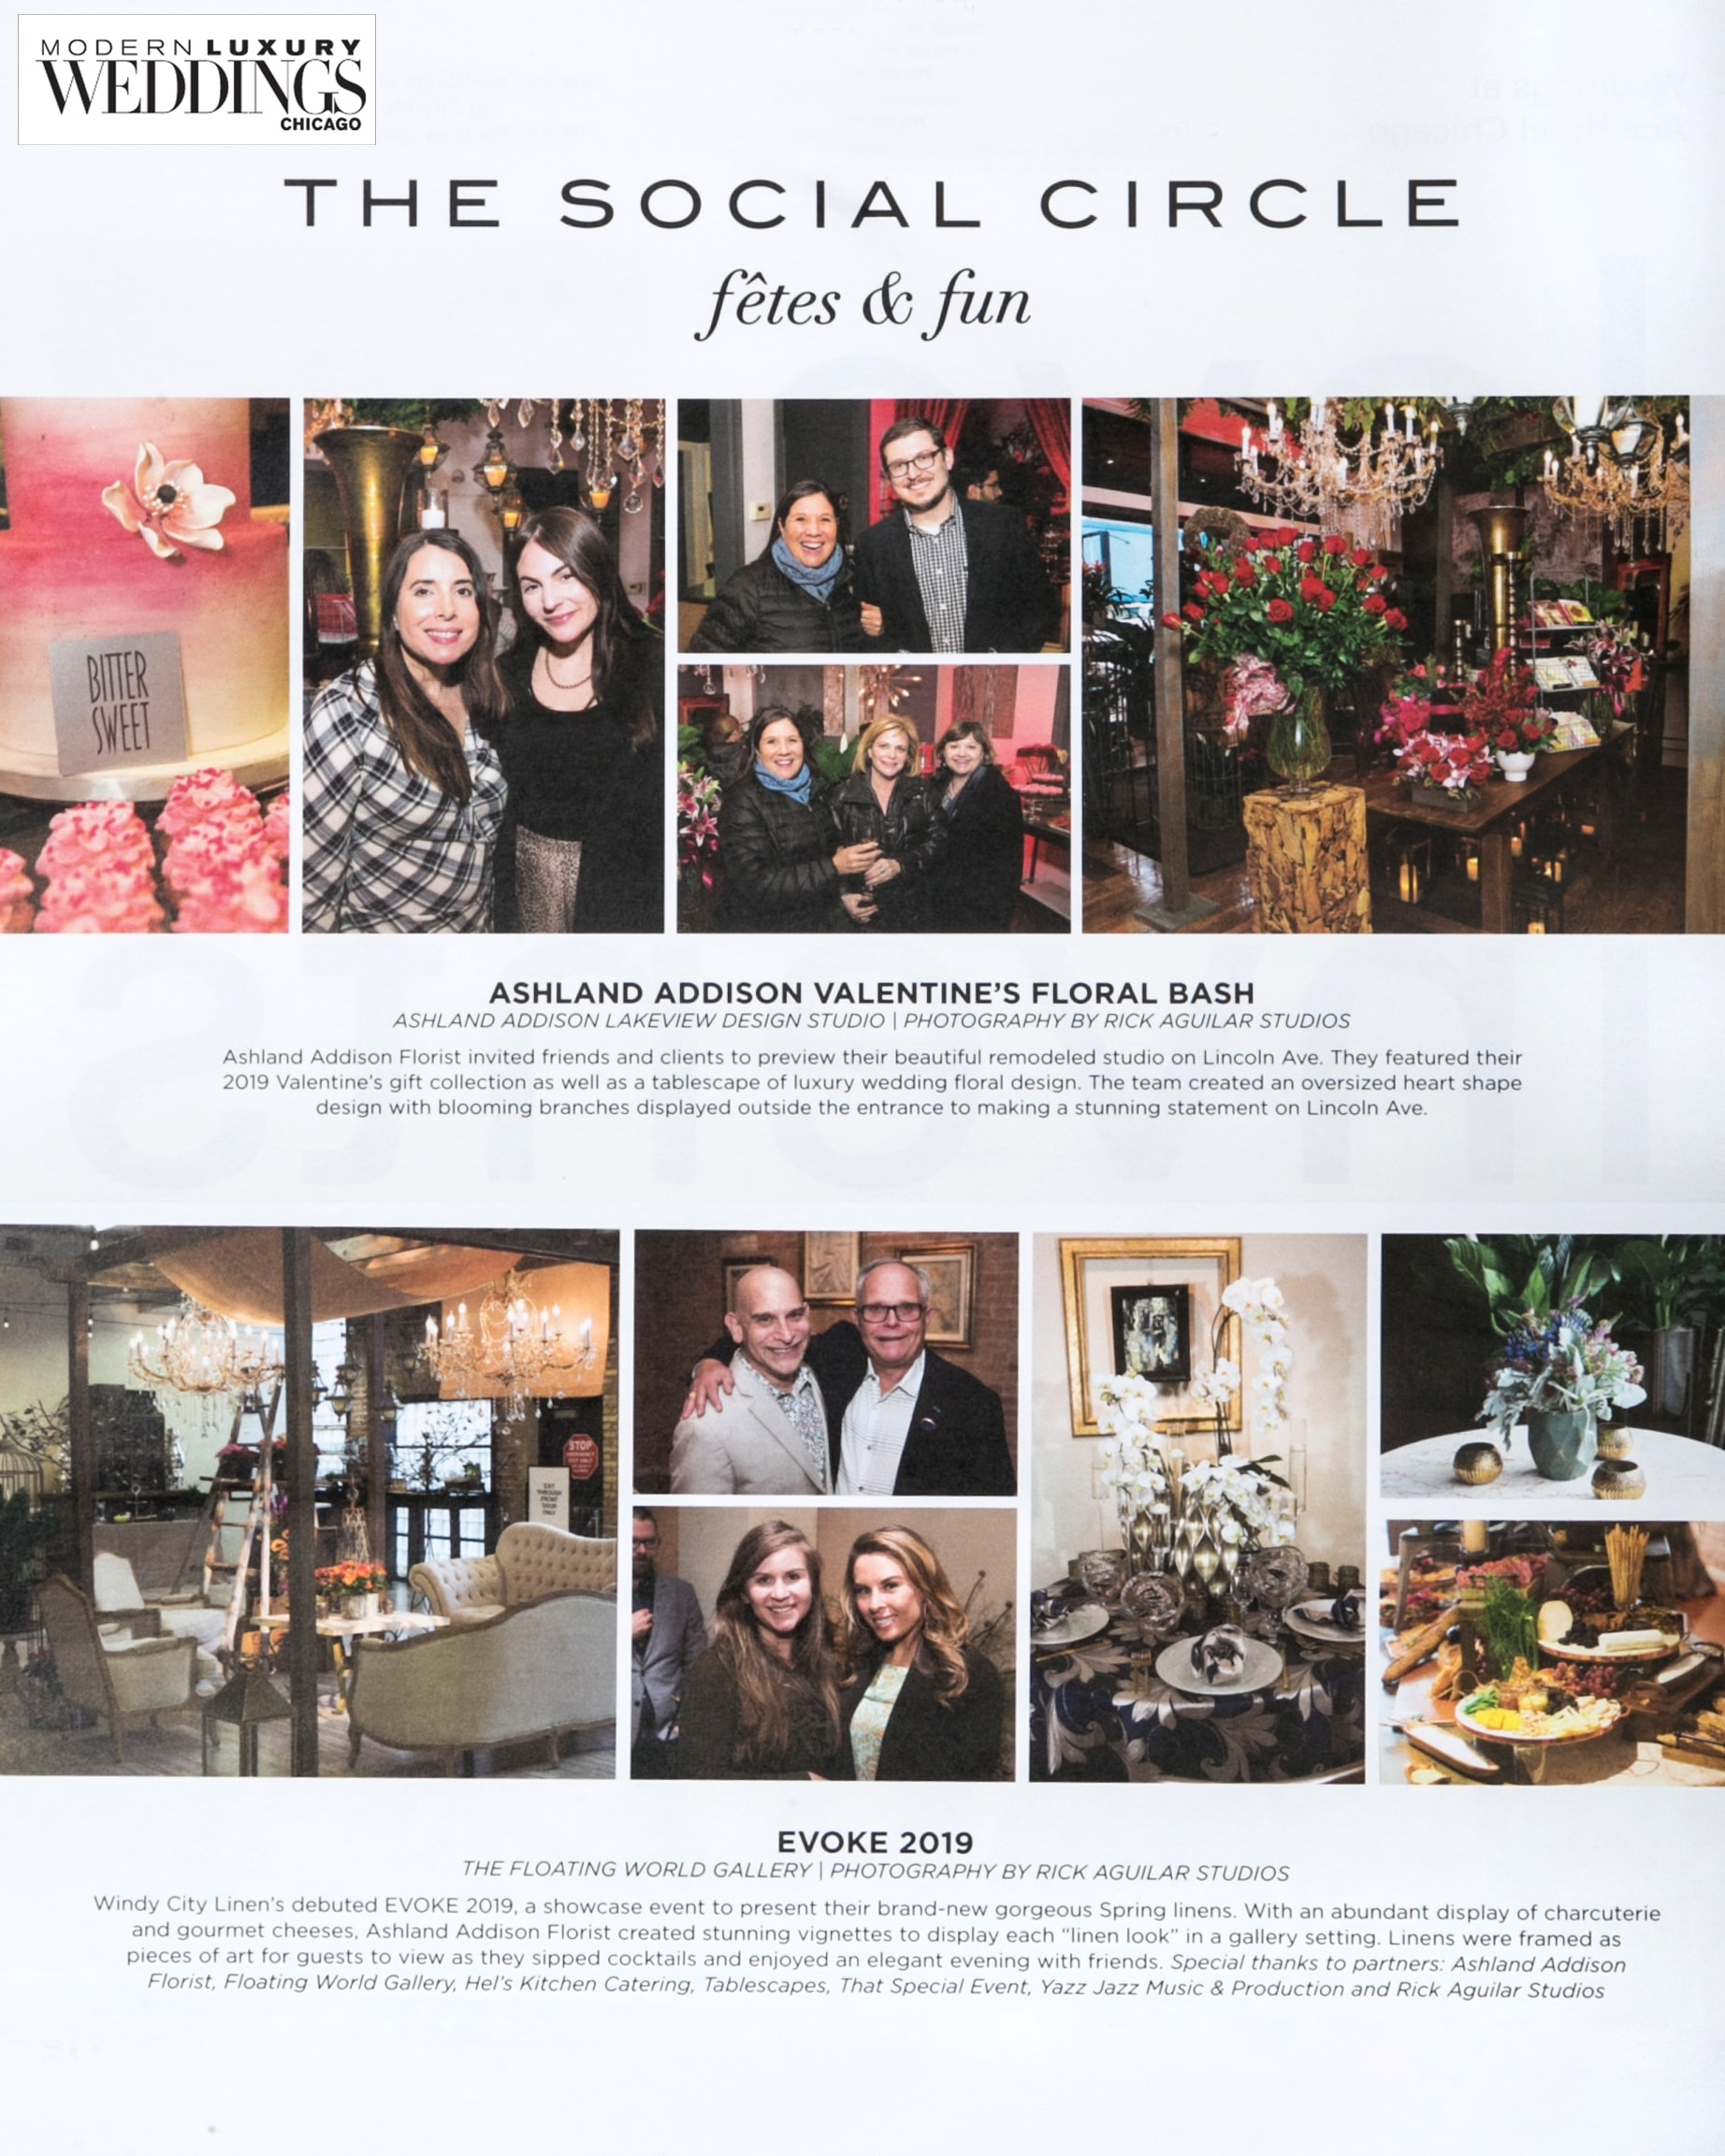 Chicago Event photography published in Modern Luxury Weddings